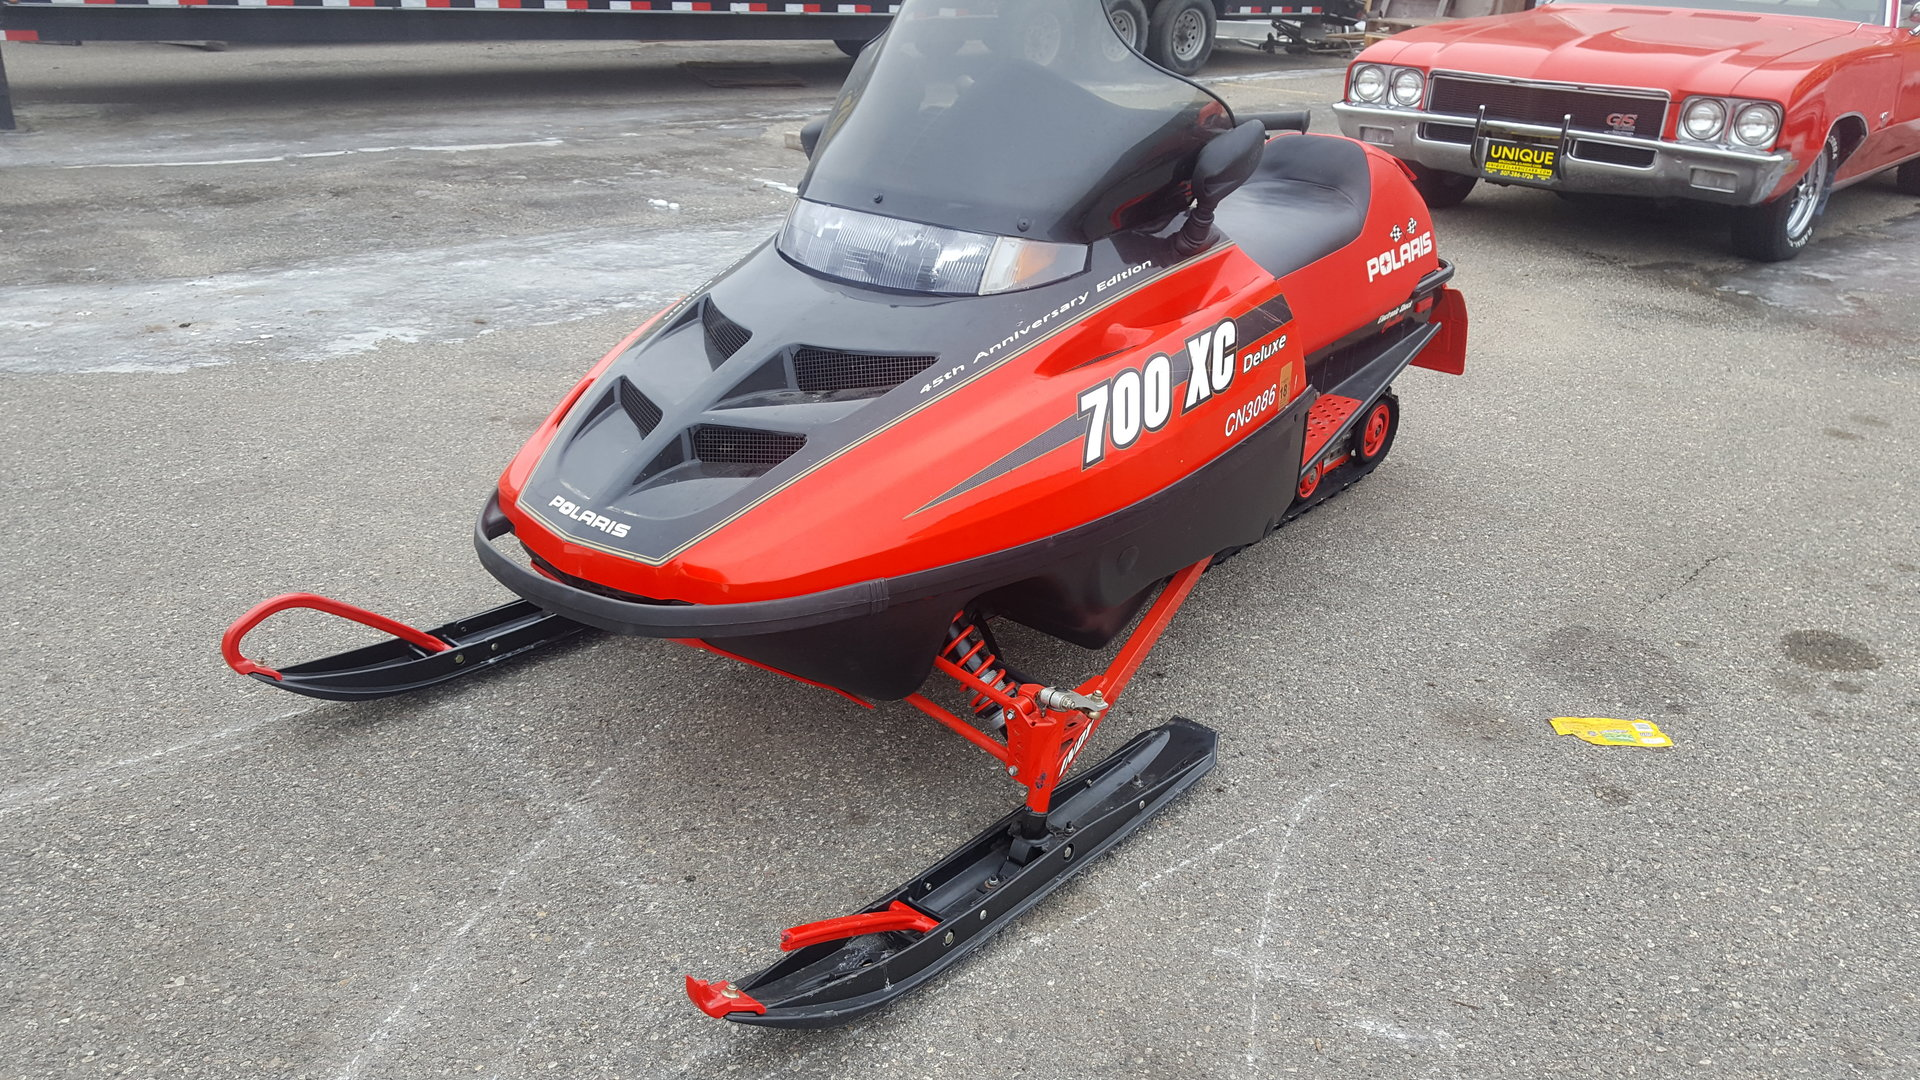 2000 POLARIS 700 XC Deluxe For Sale ...